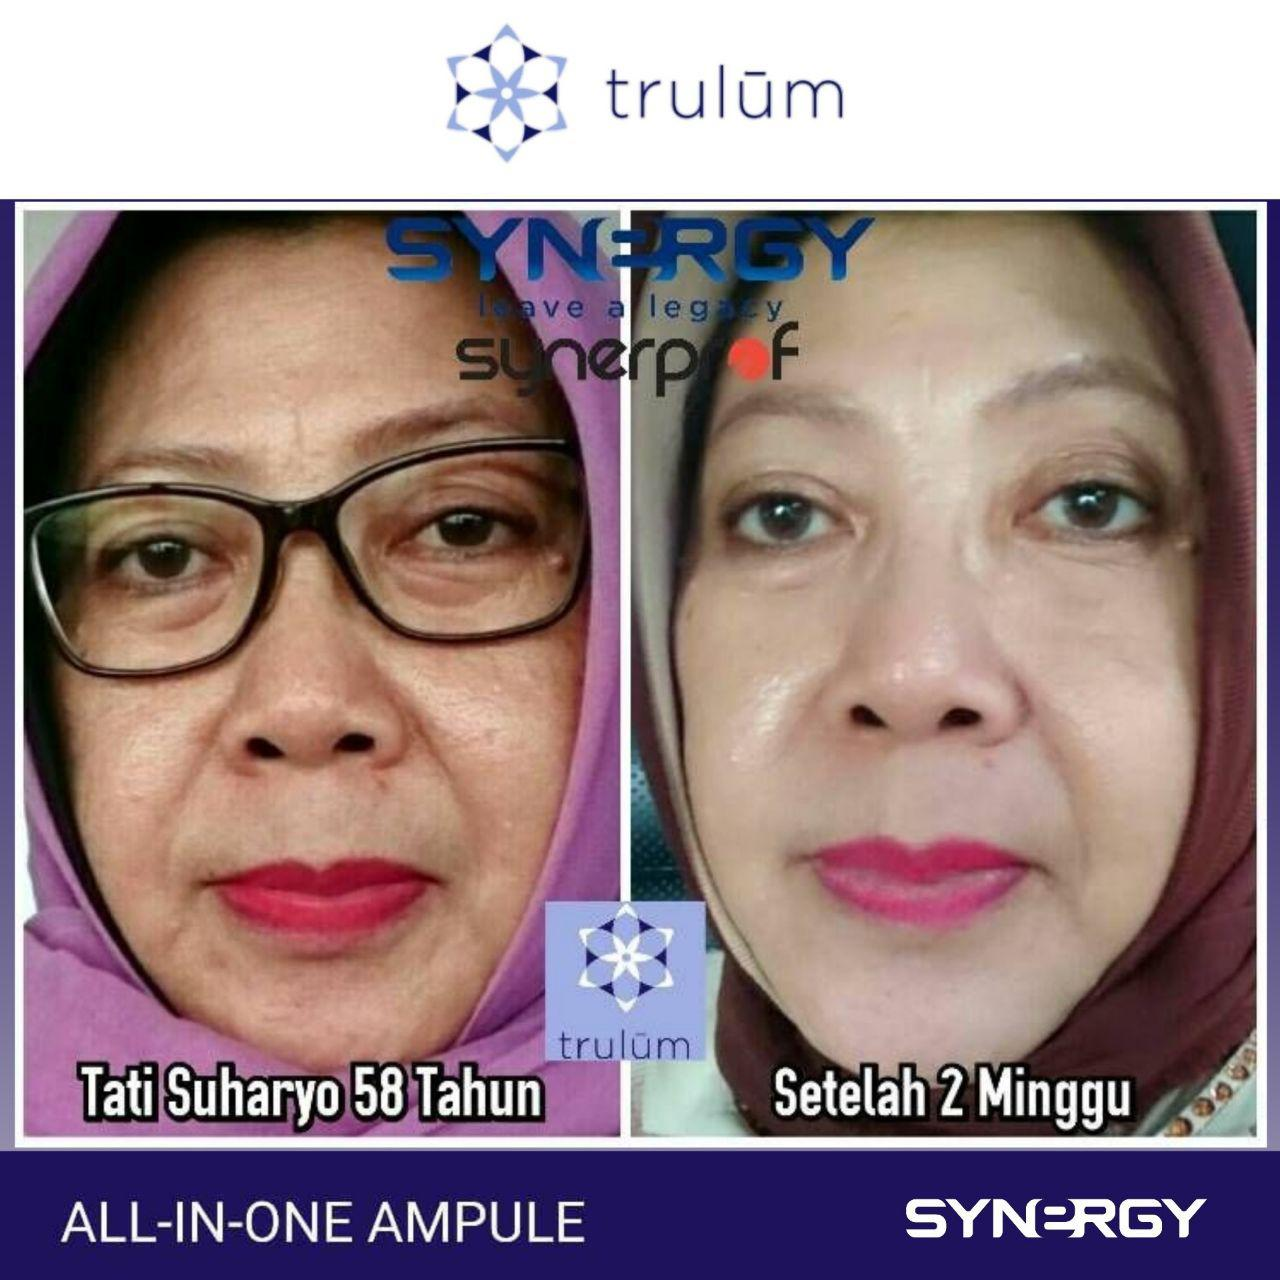 Jual Trulum All In One Ampoule Di Pasrujambe WA: 08112338376